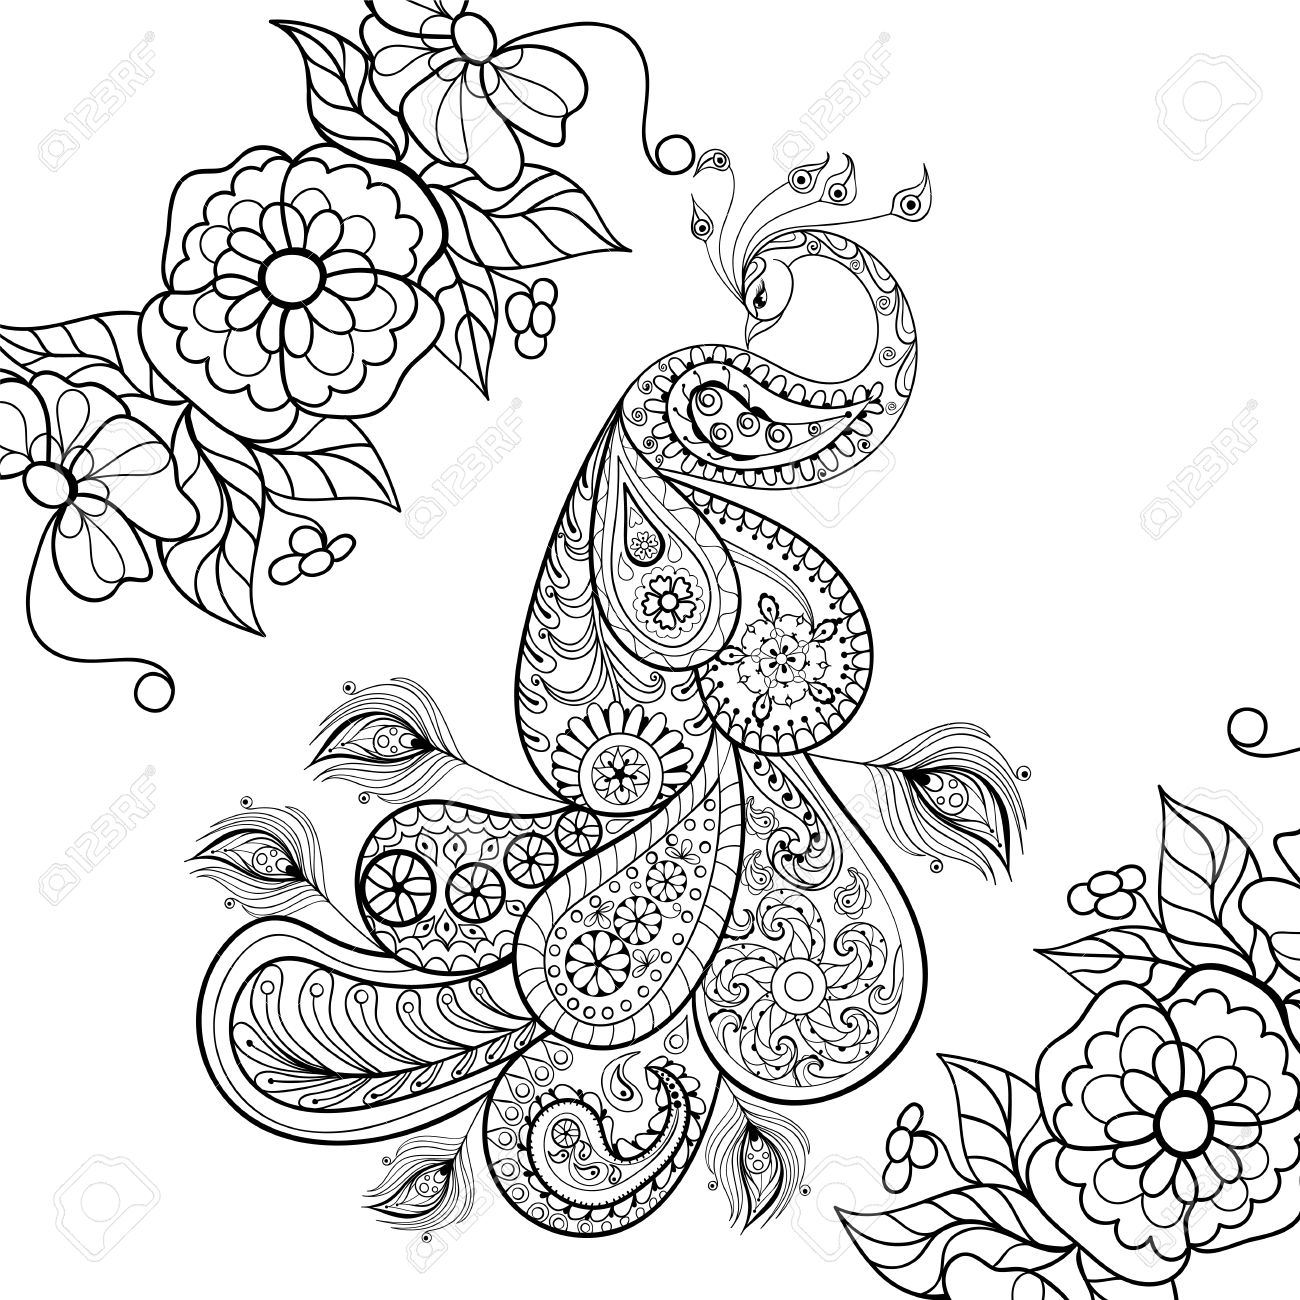 Zentangle Peacock Totem In Flowersfor Adult Anti Stress Coloring Page For Art Therapy Illustration